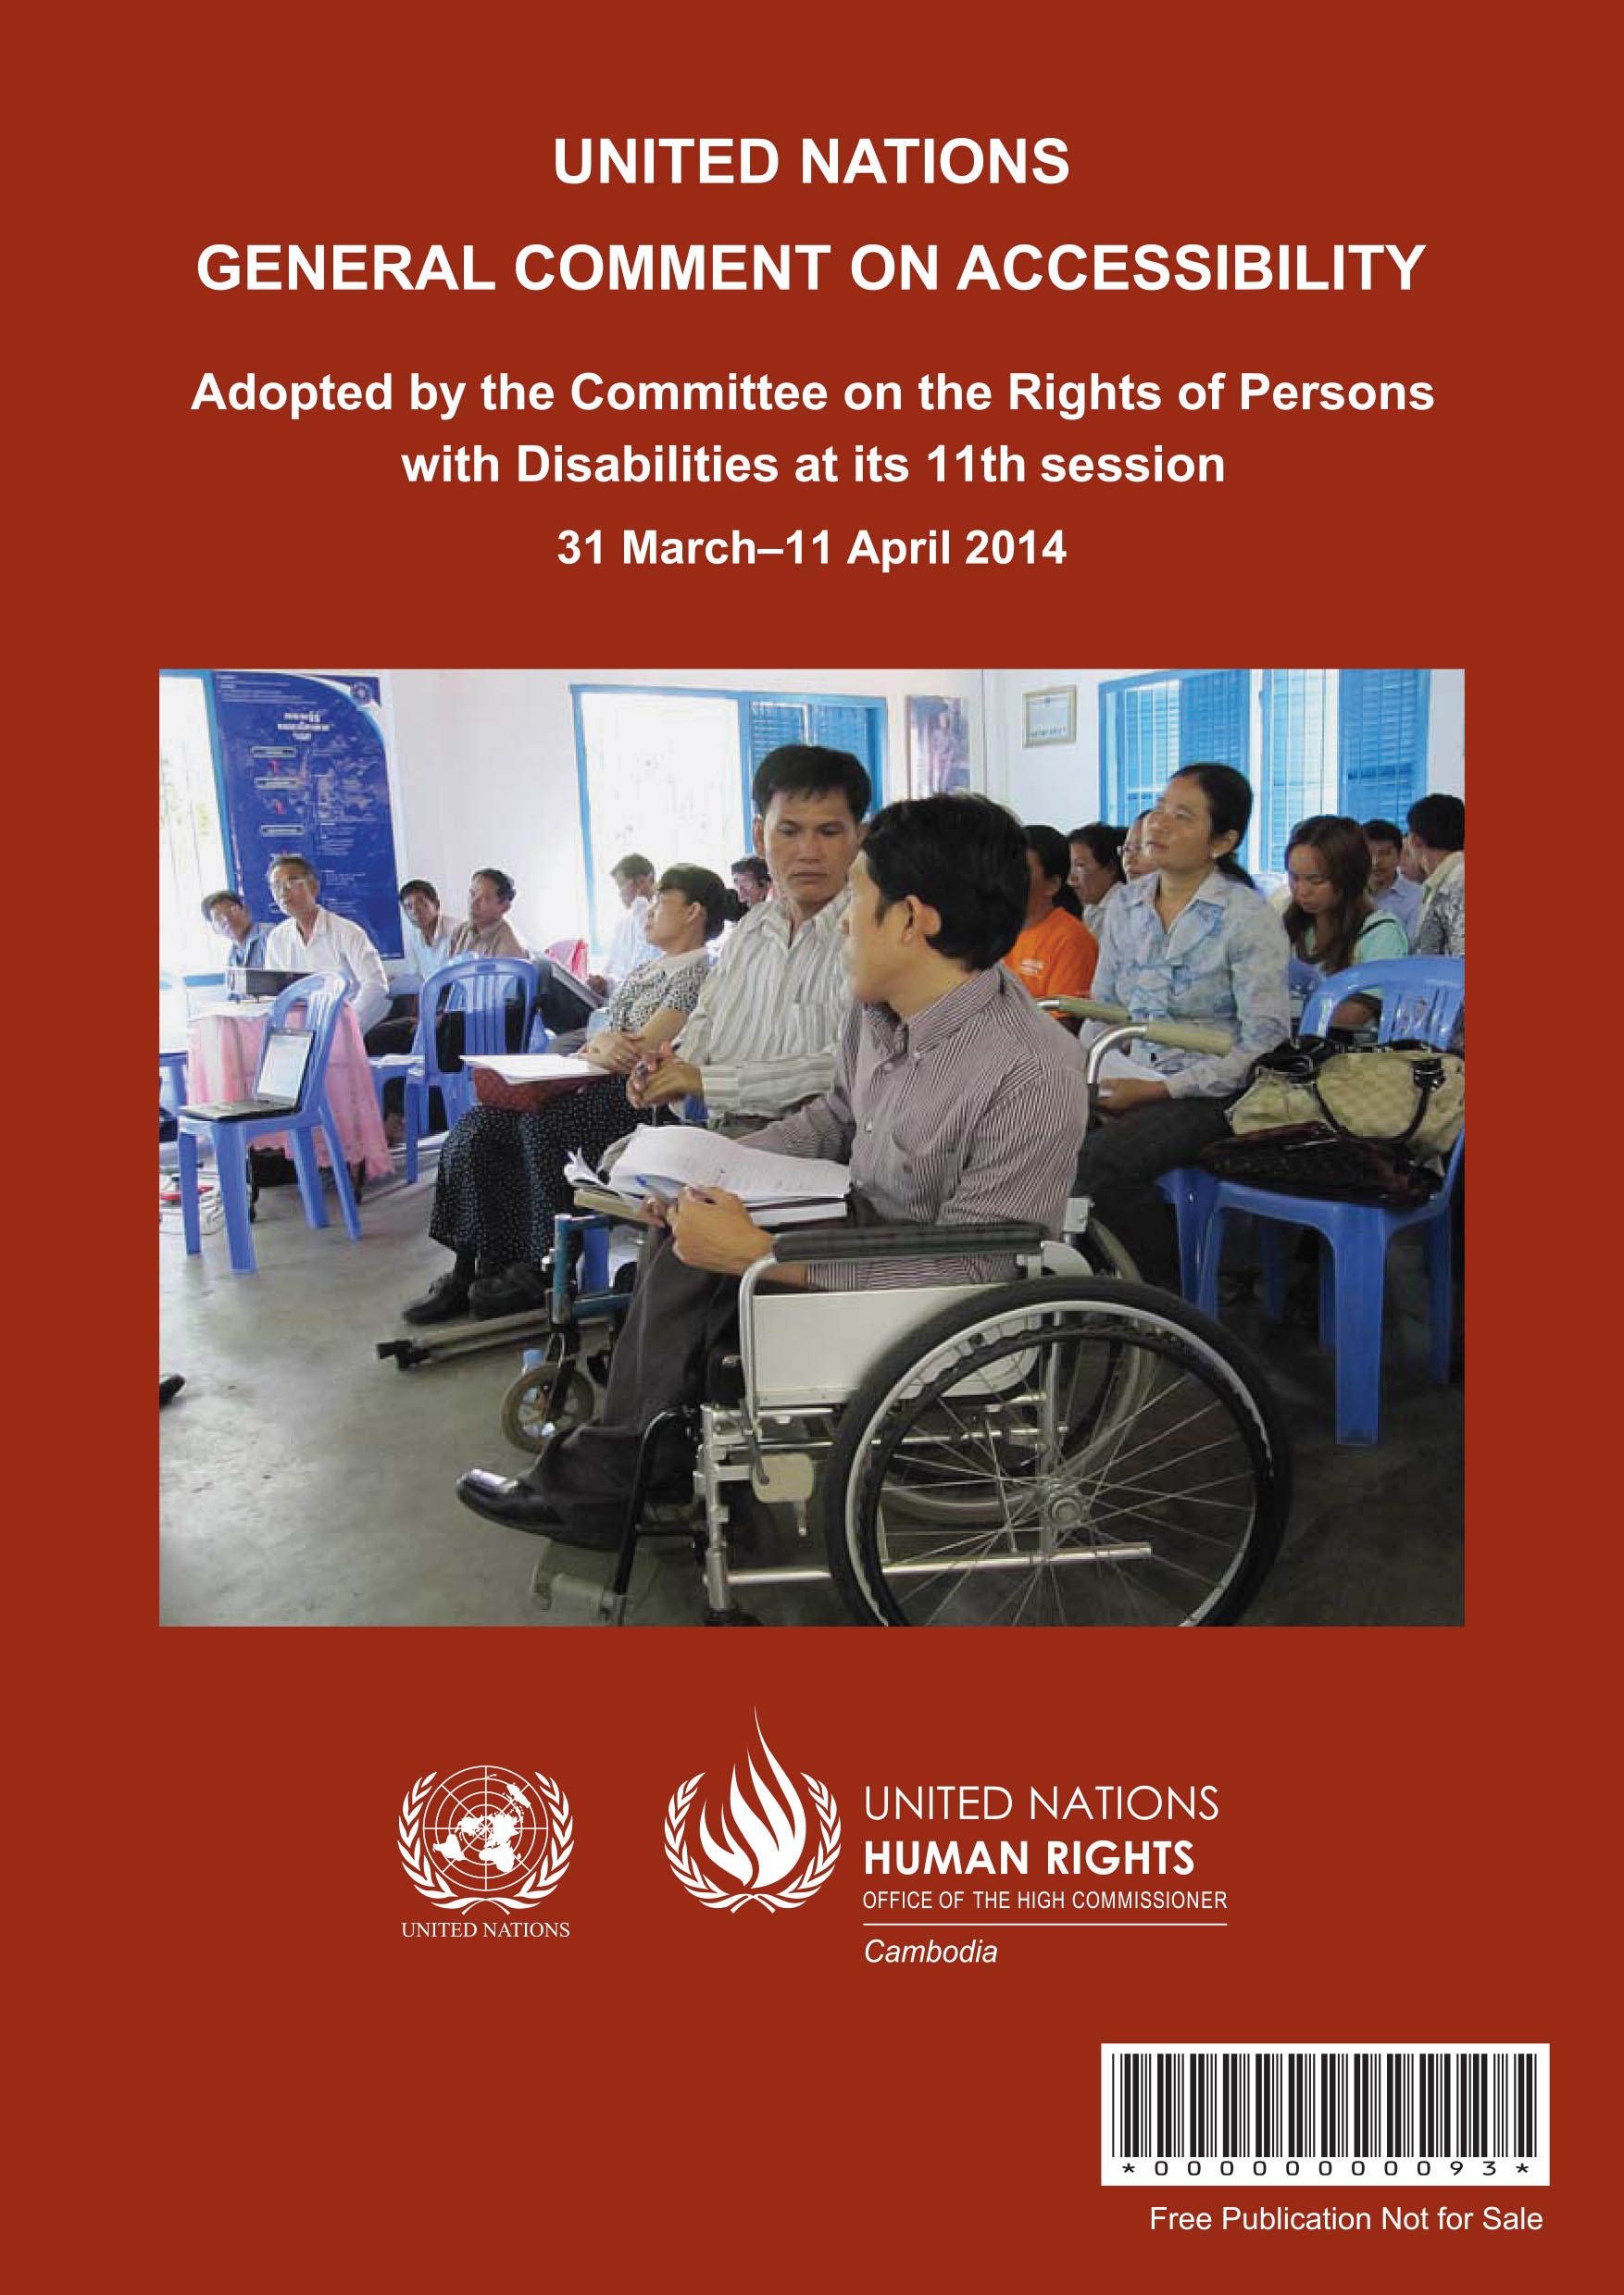 General Comment No 2 of the Committee on the Rights of Persons with Disabilities, on Accessibility